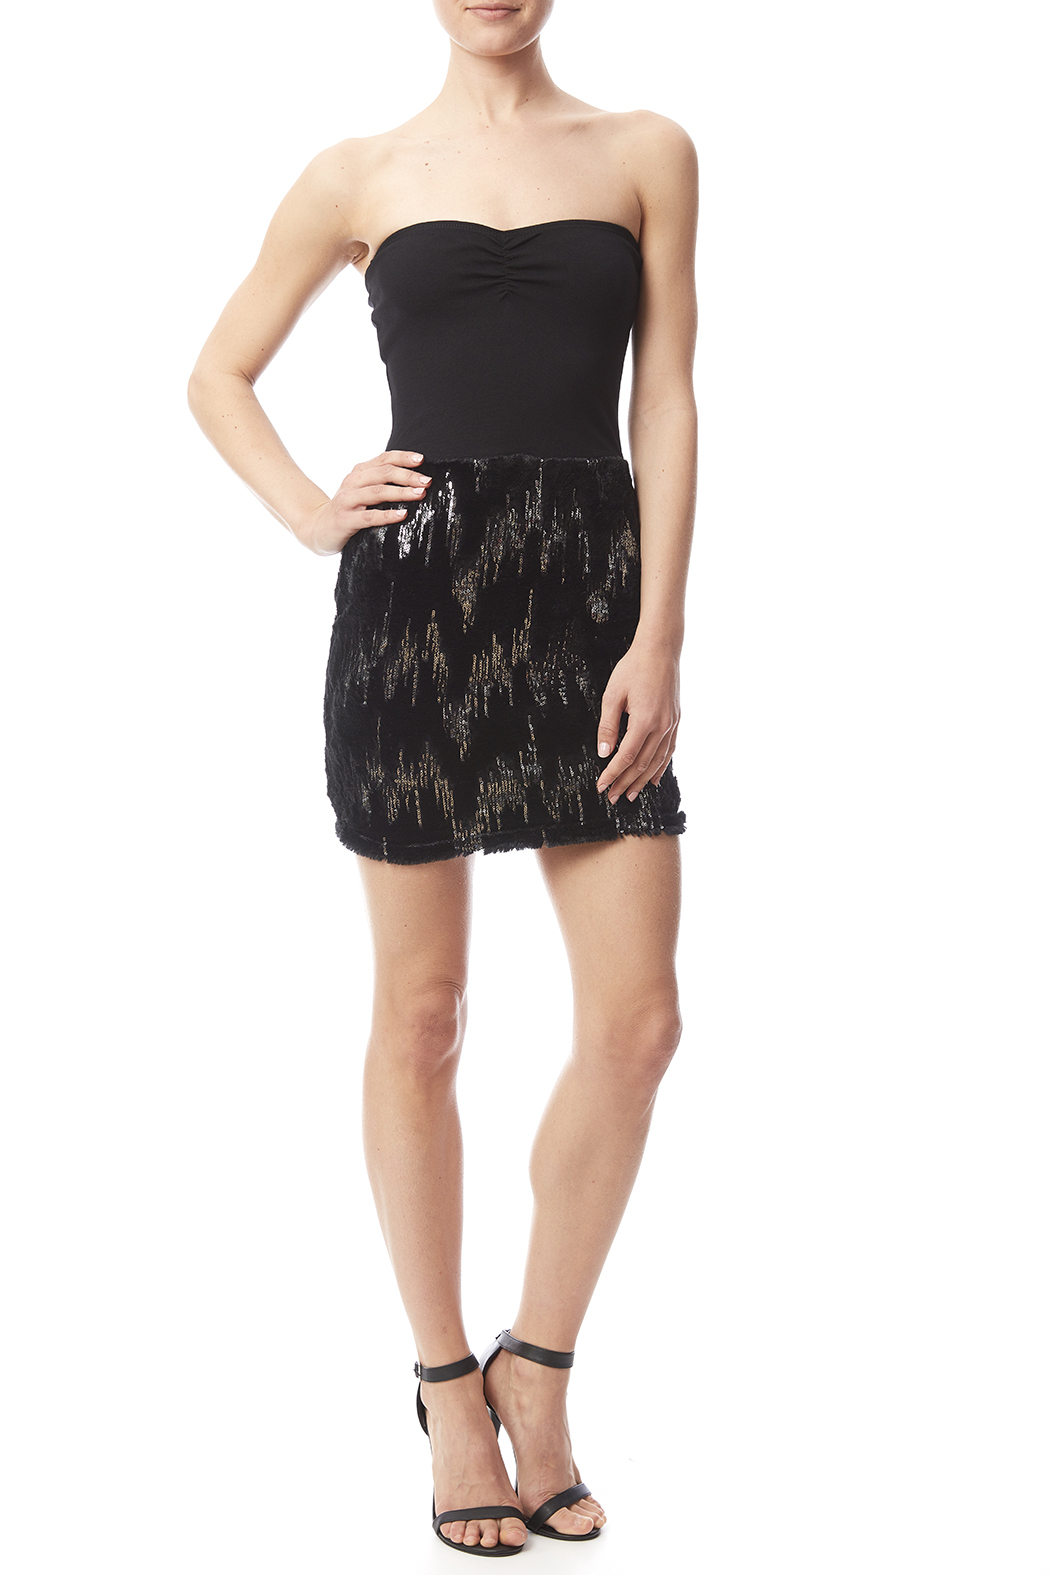 W by Wenjie Black Strapless Dress - Front Full Image